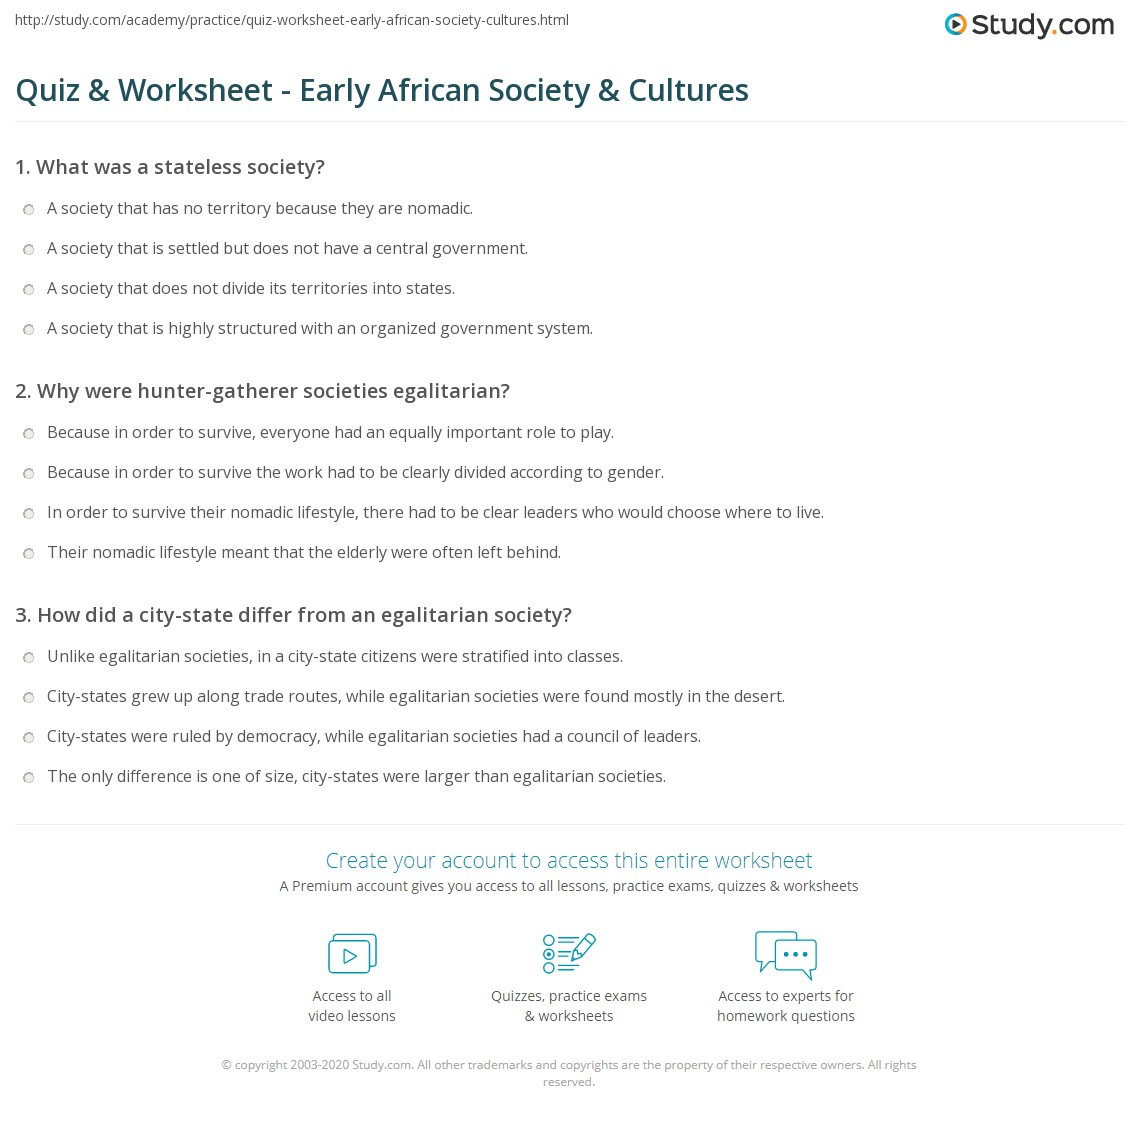 early african societies study guide We explain the revolutions, wars, and social movements that shaped american and european history our study guides are available online and in book form at barnesandnoblecom  european history.